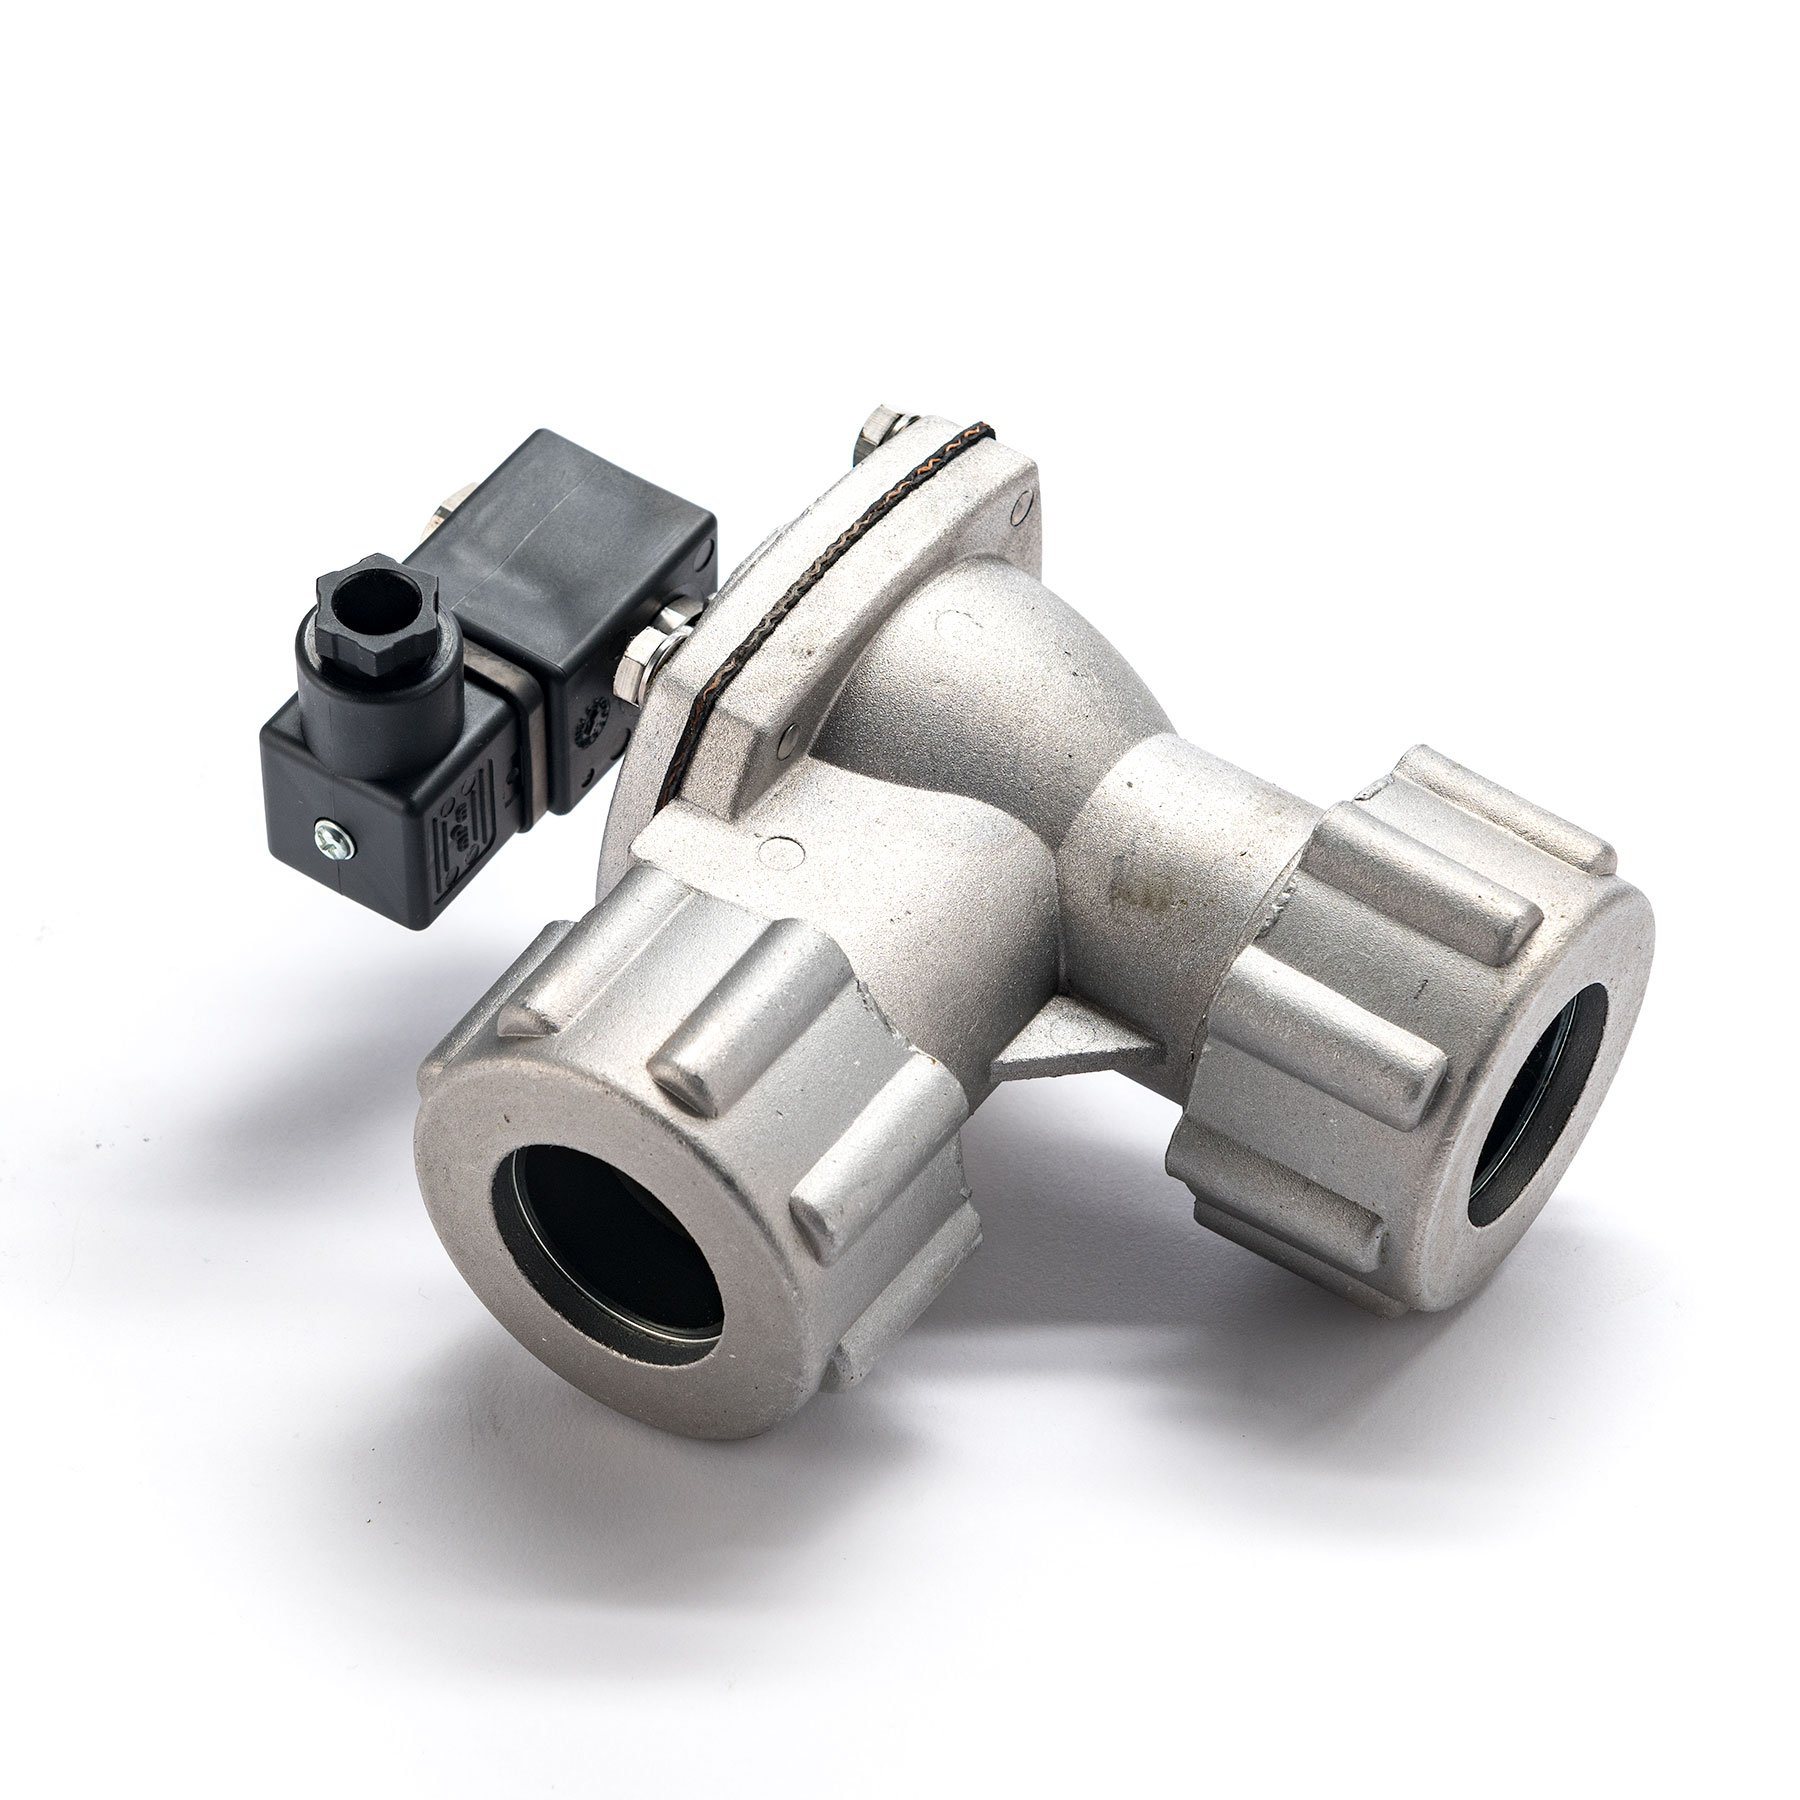 Solenoid & Butterfly Parts